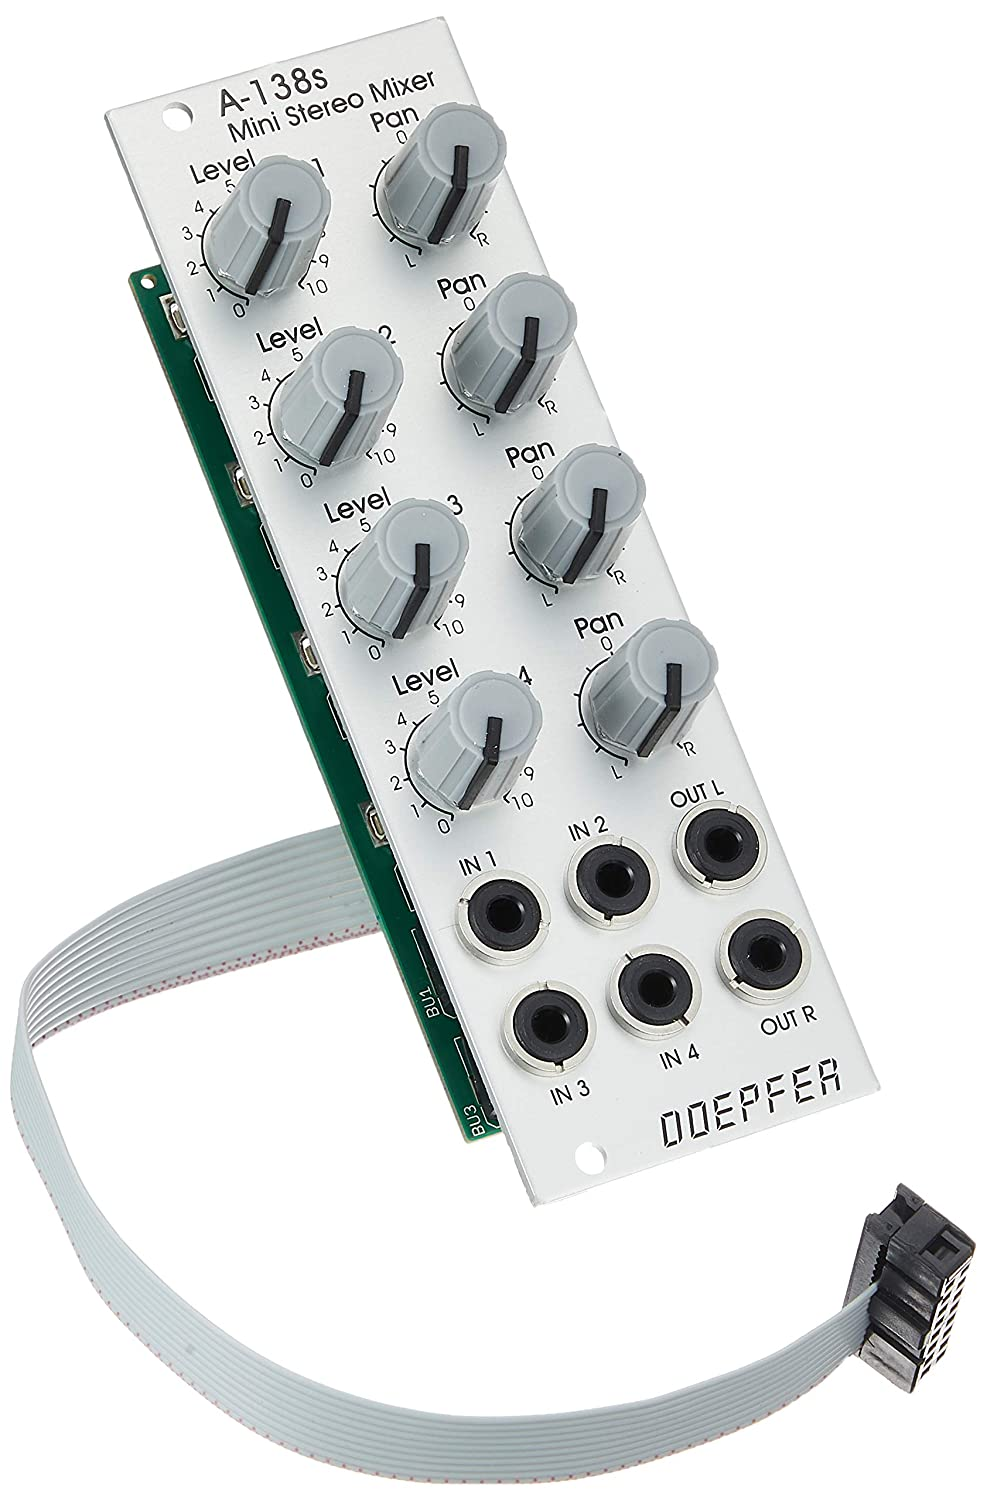 Doepfer A-138s Stereo Mixer ユーロラック モジュラーシンセ   B07HJKBQF9